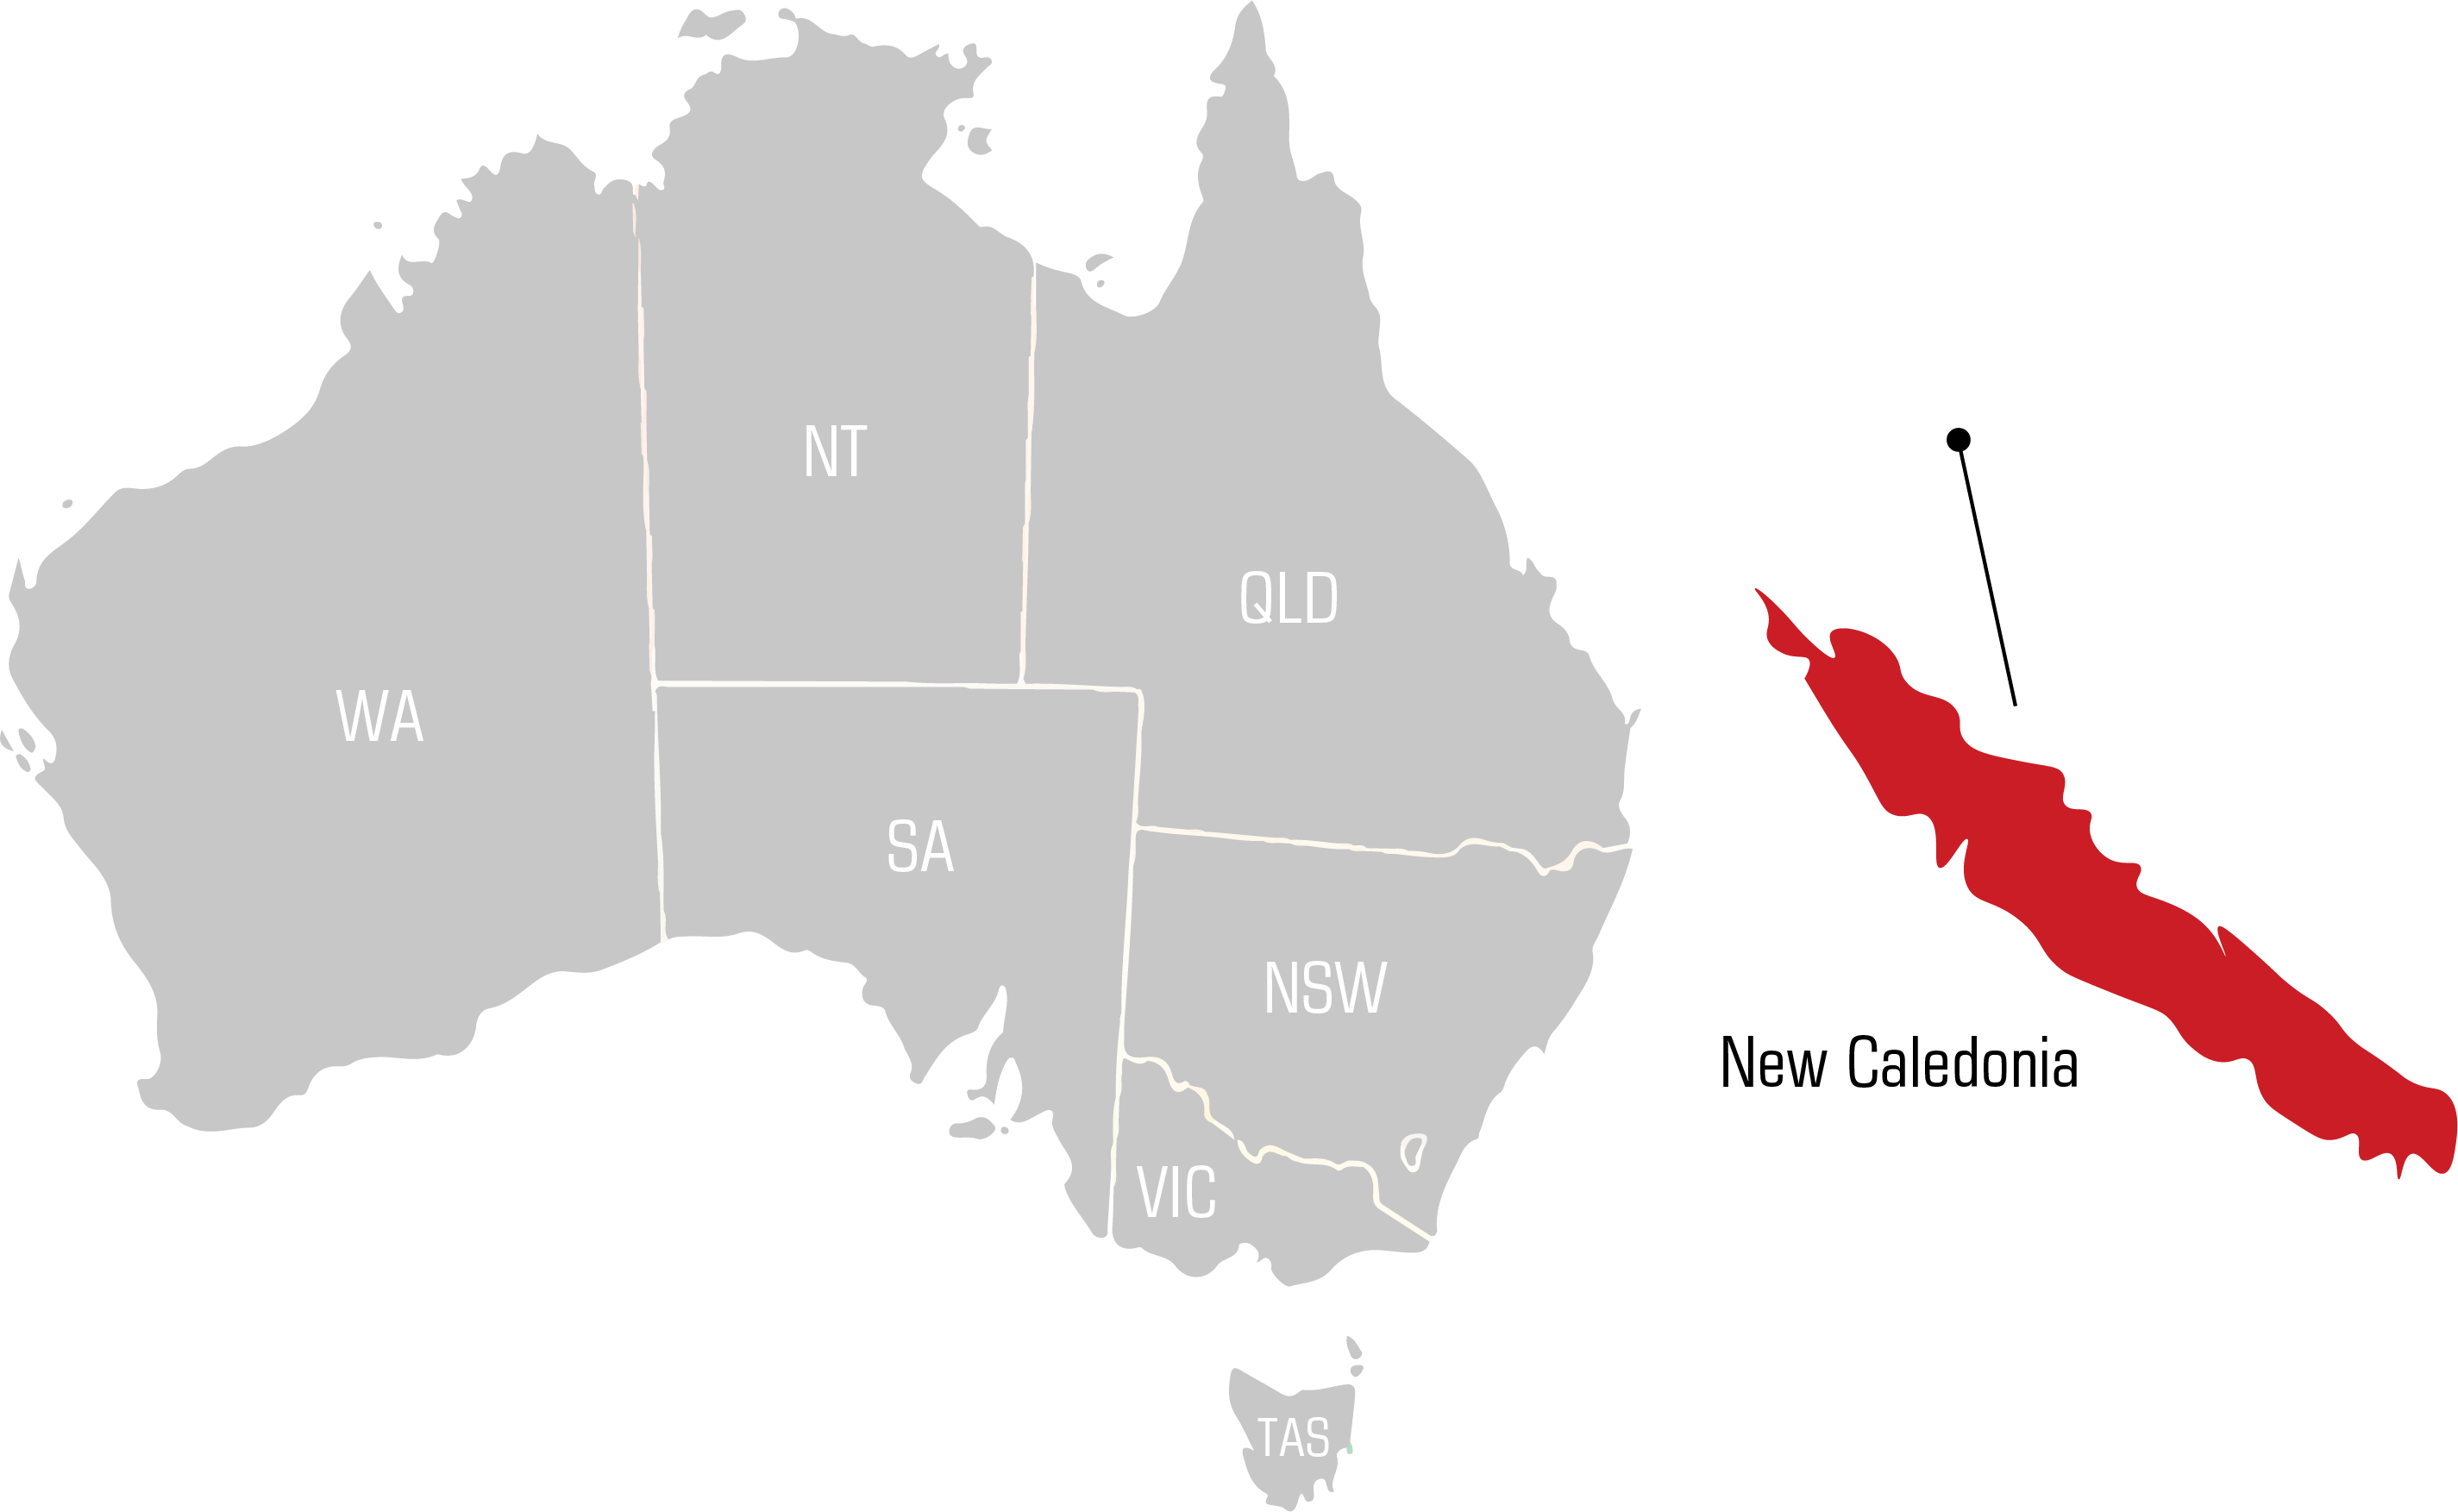 QWS new caledonia Welding Supplies map